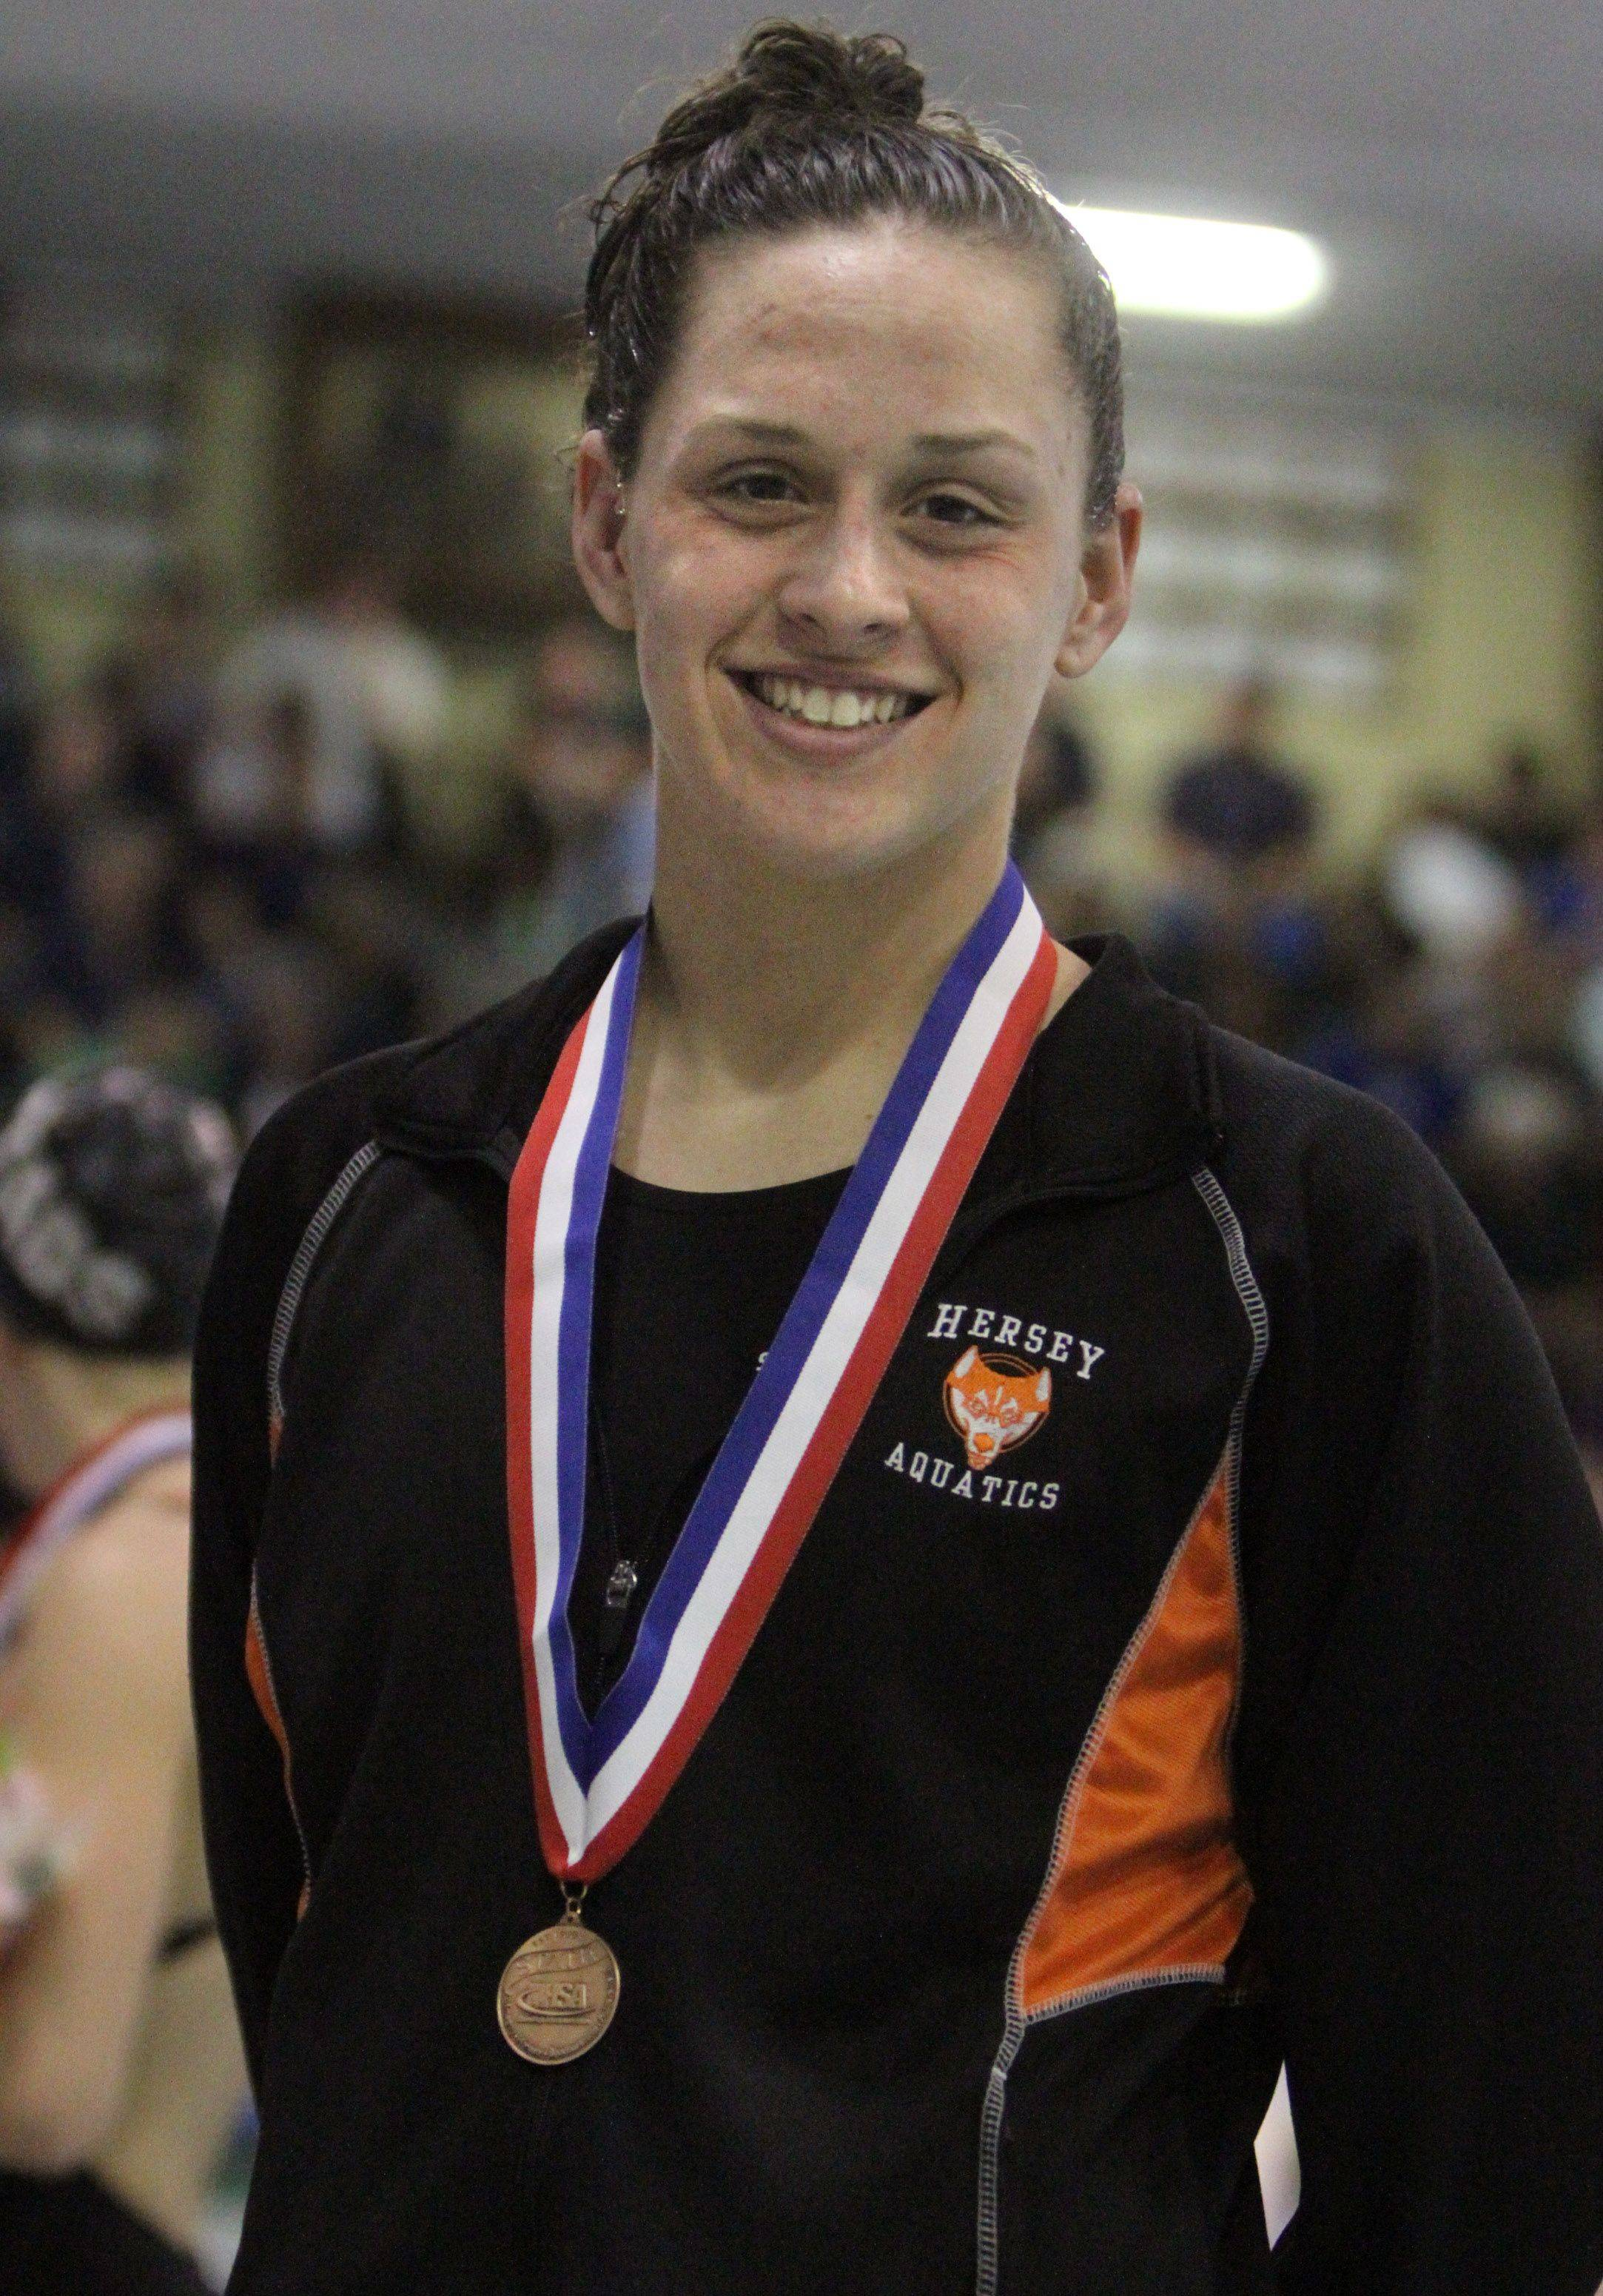 Hersey's Amanda Petro placed ninth in the 200-yard freestyle at the state championships in Winnetka on Saturday.